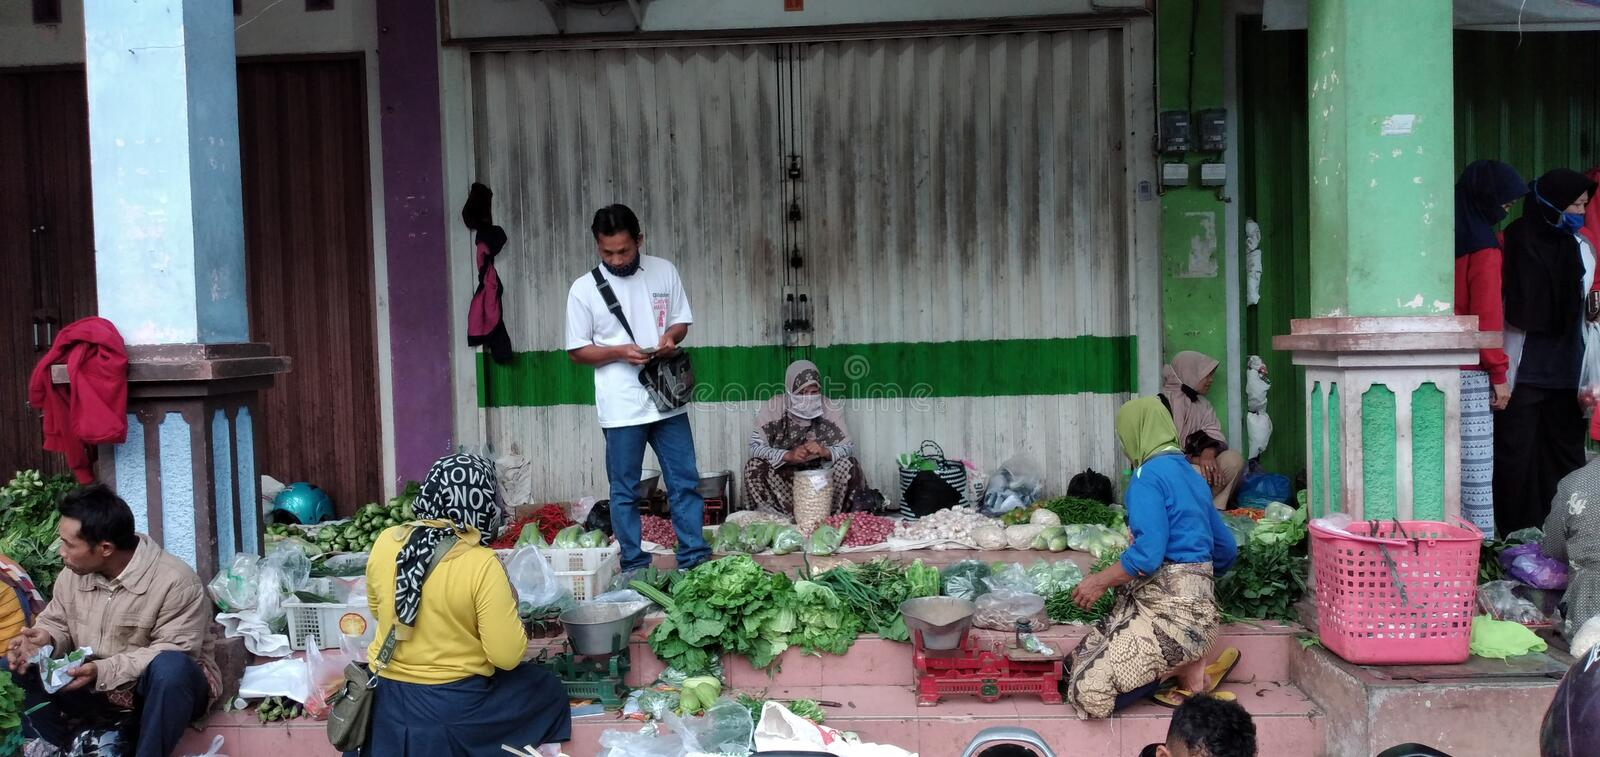 Temanggung central java, indinesia, July 25,2020: Morning atmosphere in a traditional market. stock photo